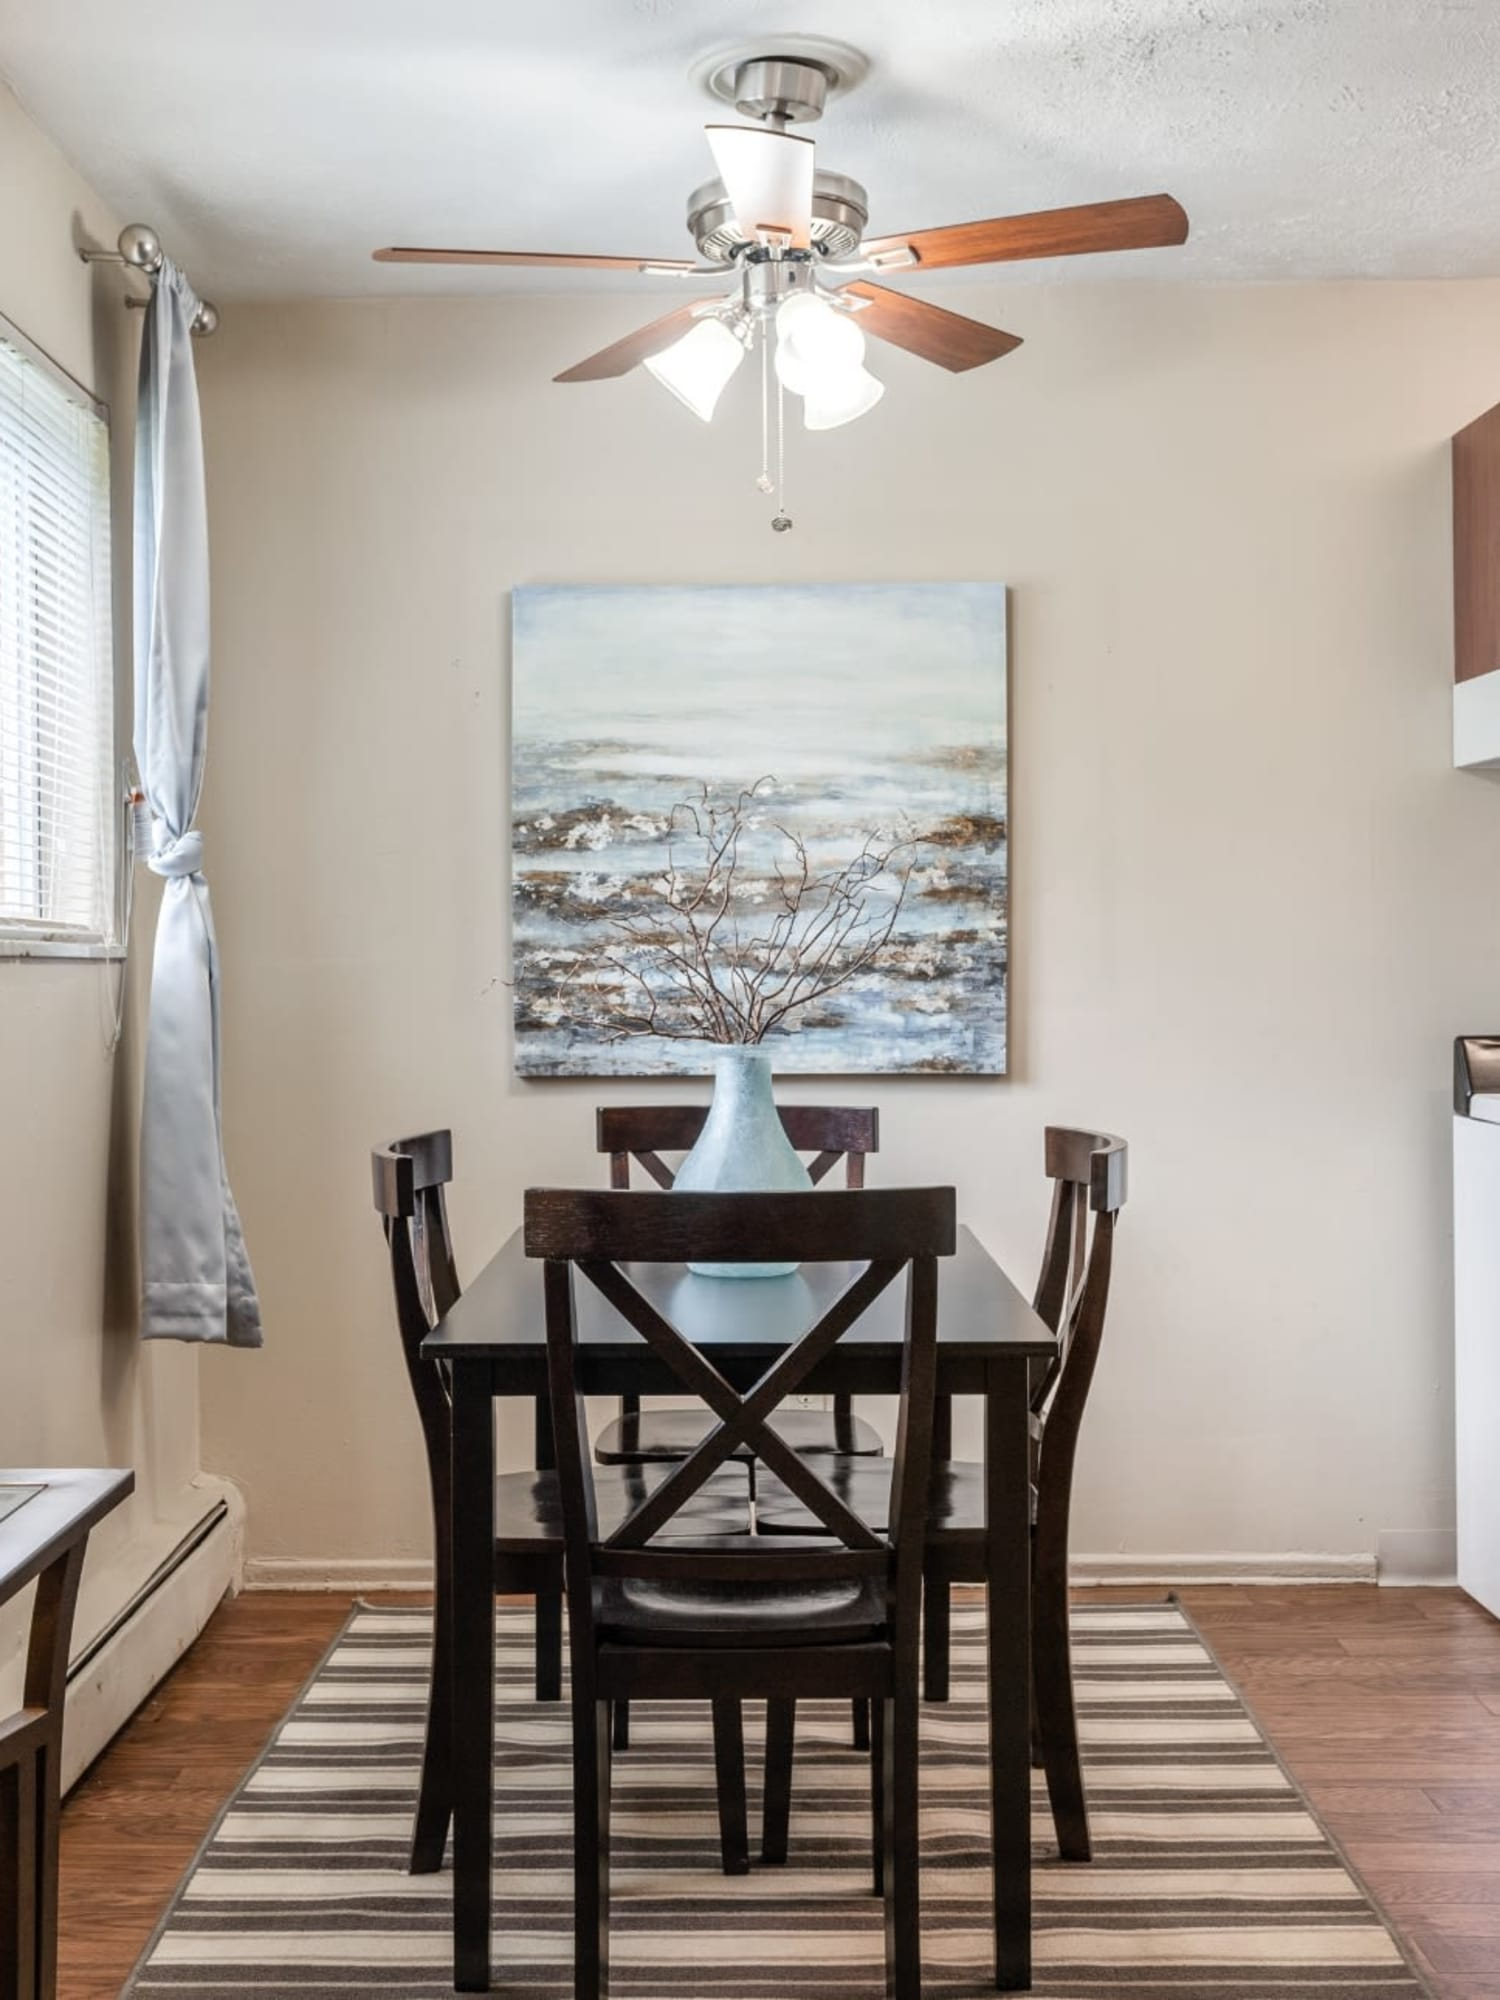 A spacious dining room with a ceiling fan at Centennial Woods Apartments in Cincinnati, Ohio